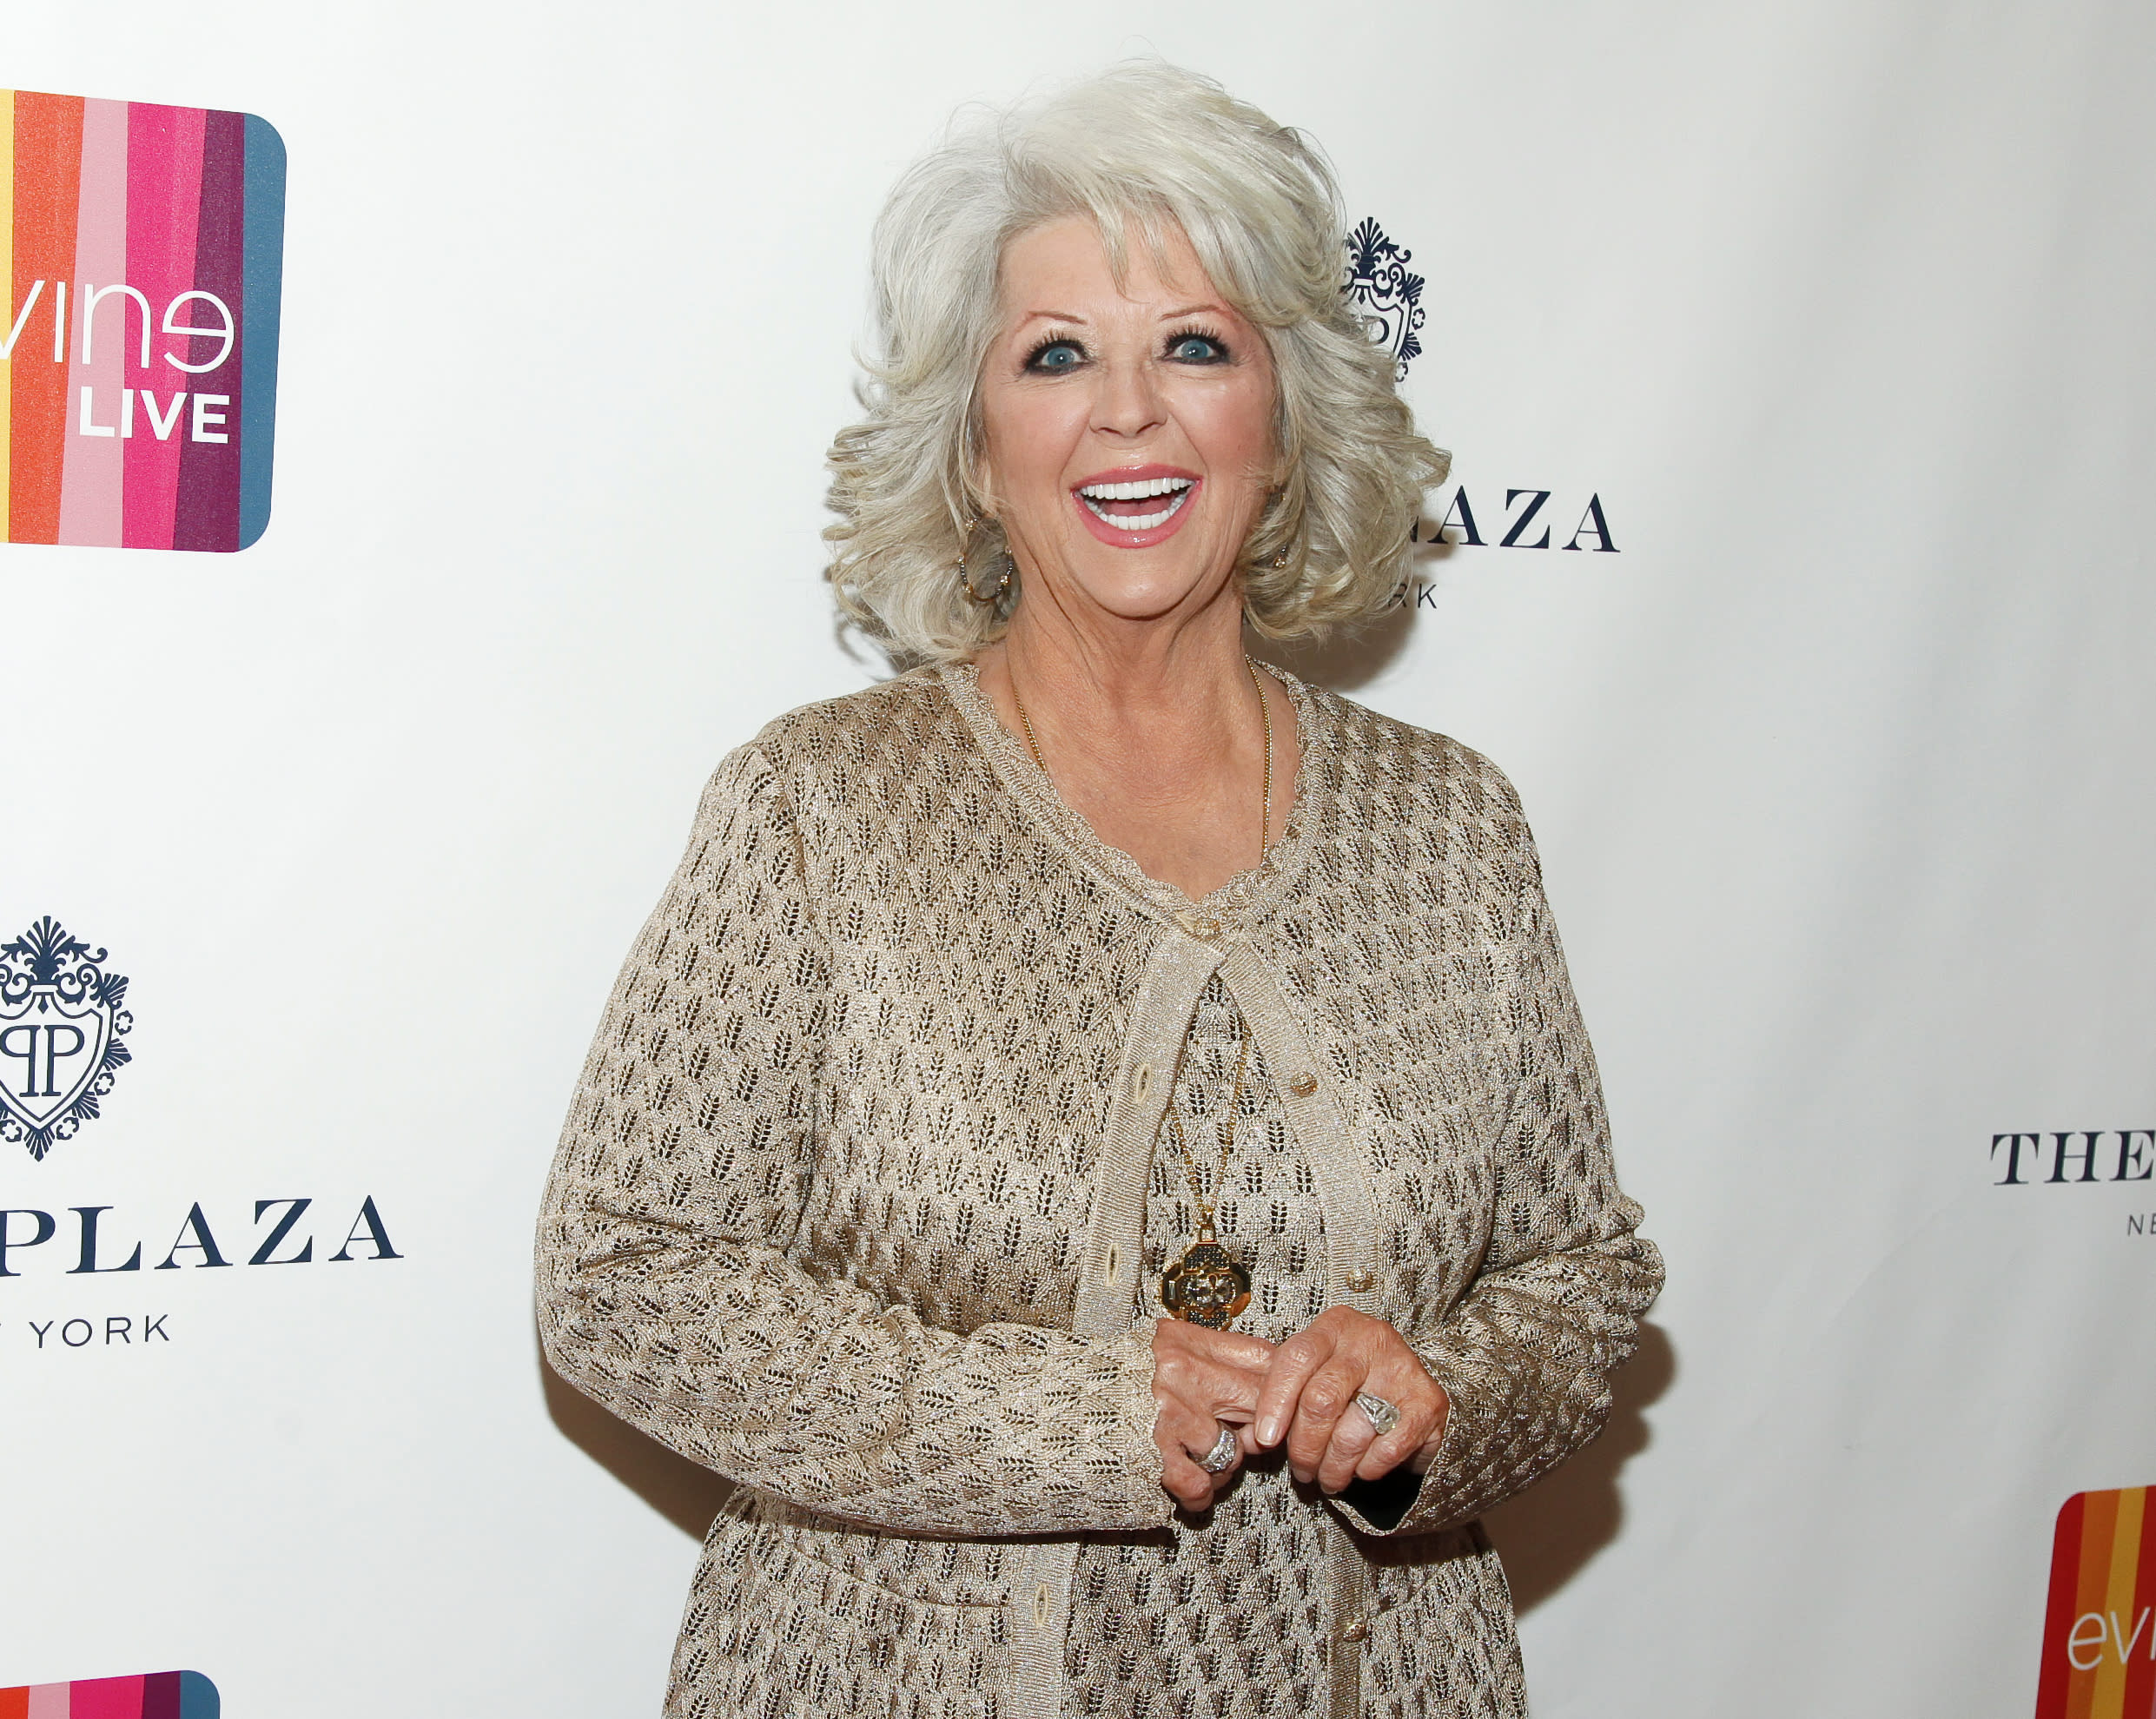 Paula Deen reaches book distribution deal with Hachette